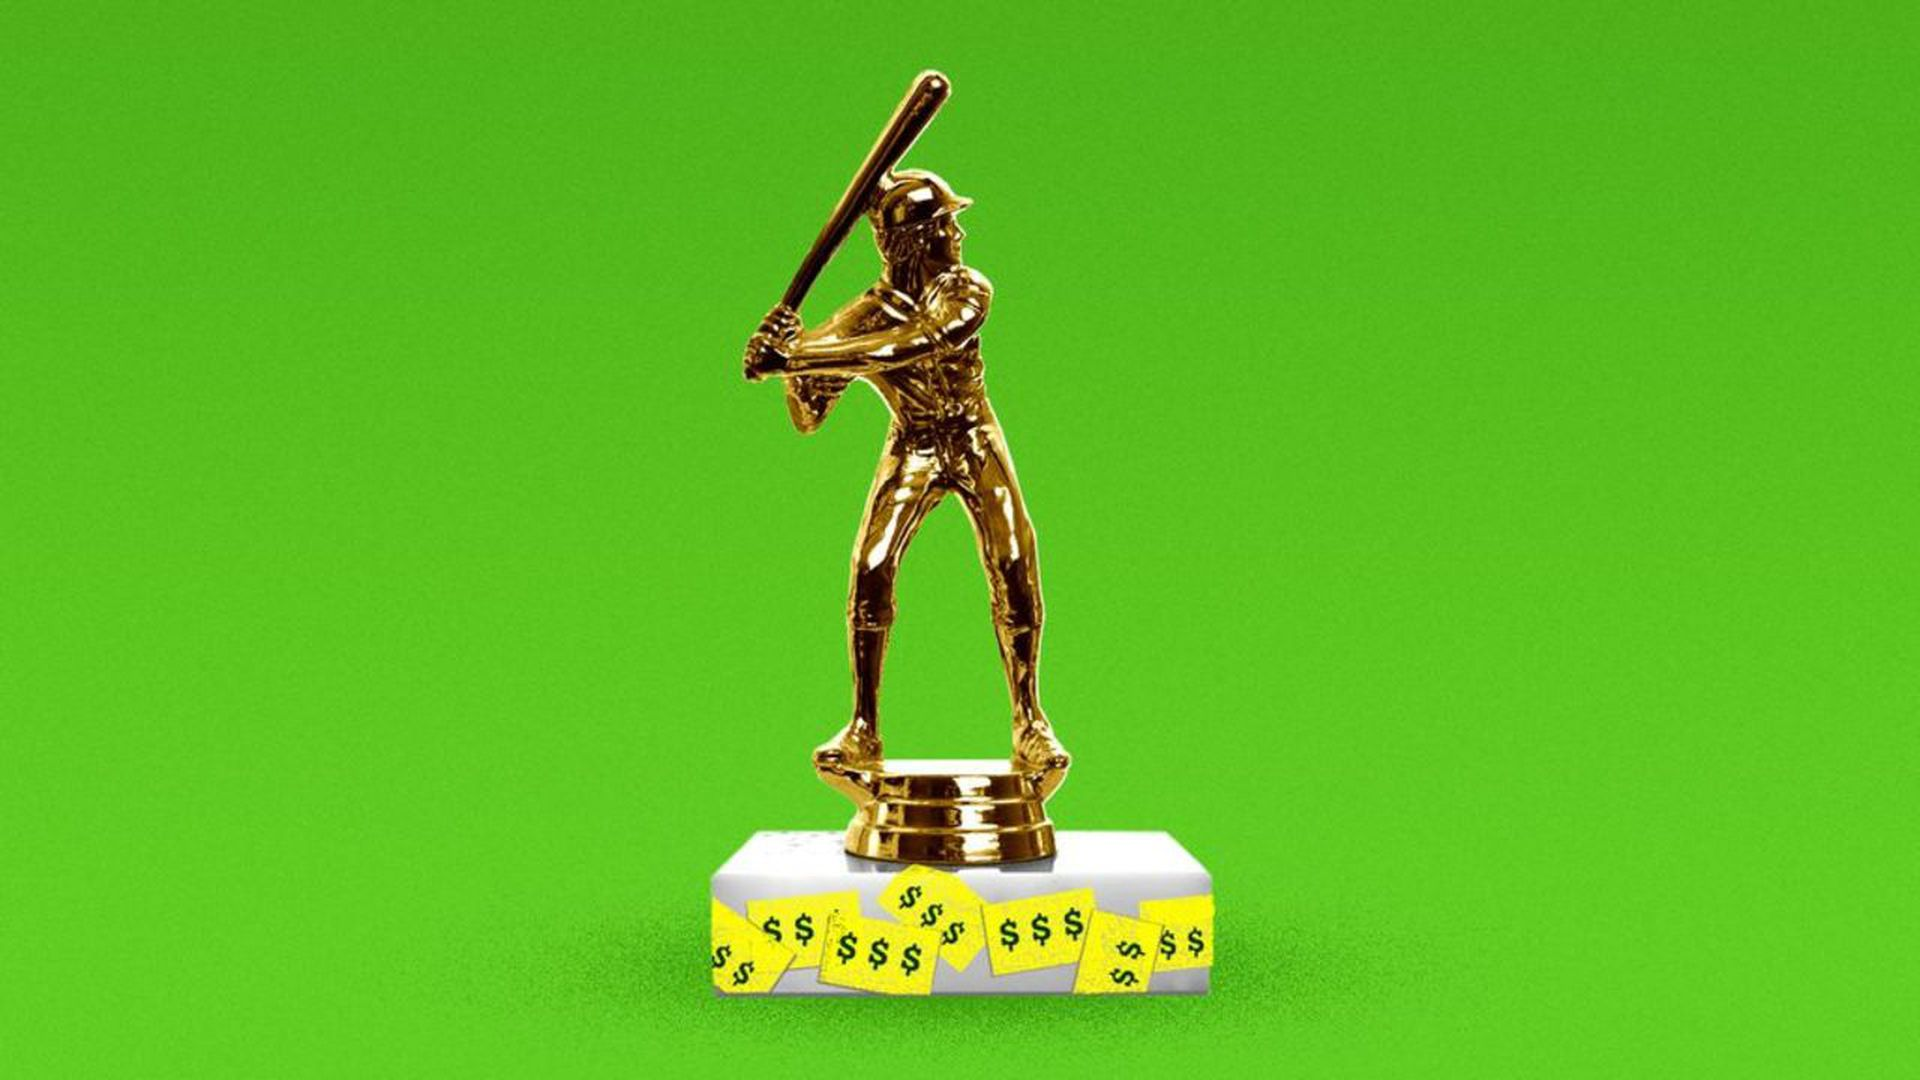 Illustration of a baseball trophy with money tags on it